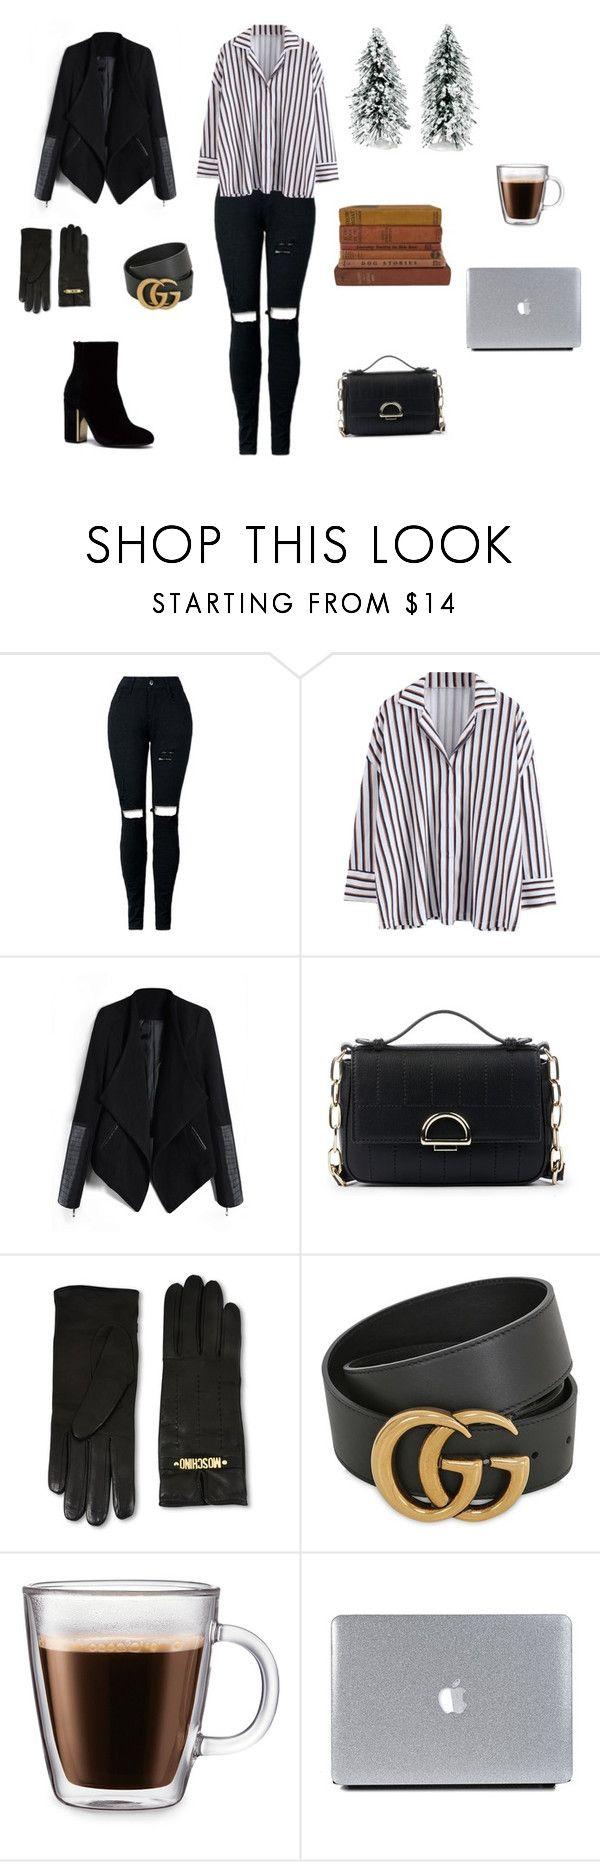 """Untitled #291"" by natalyholly on Polyvore featuring Sole Society, Moschino, Gucci, Frontgate and Vintage Collection"